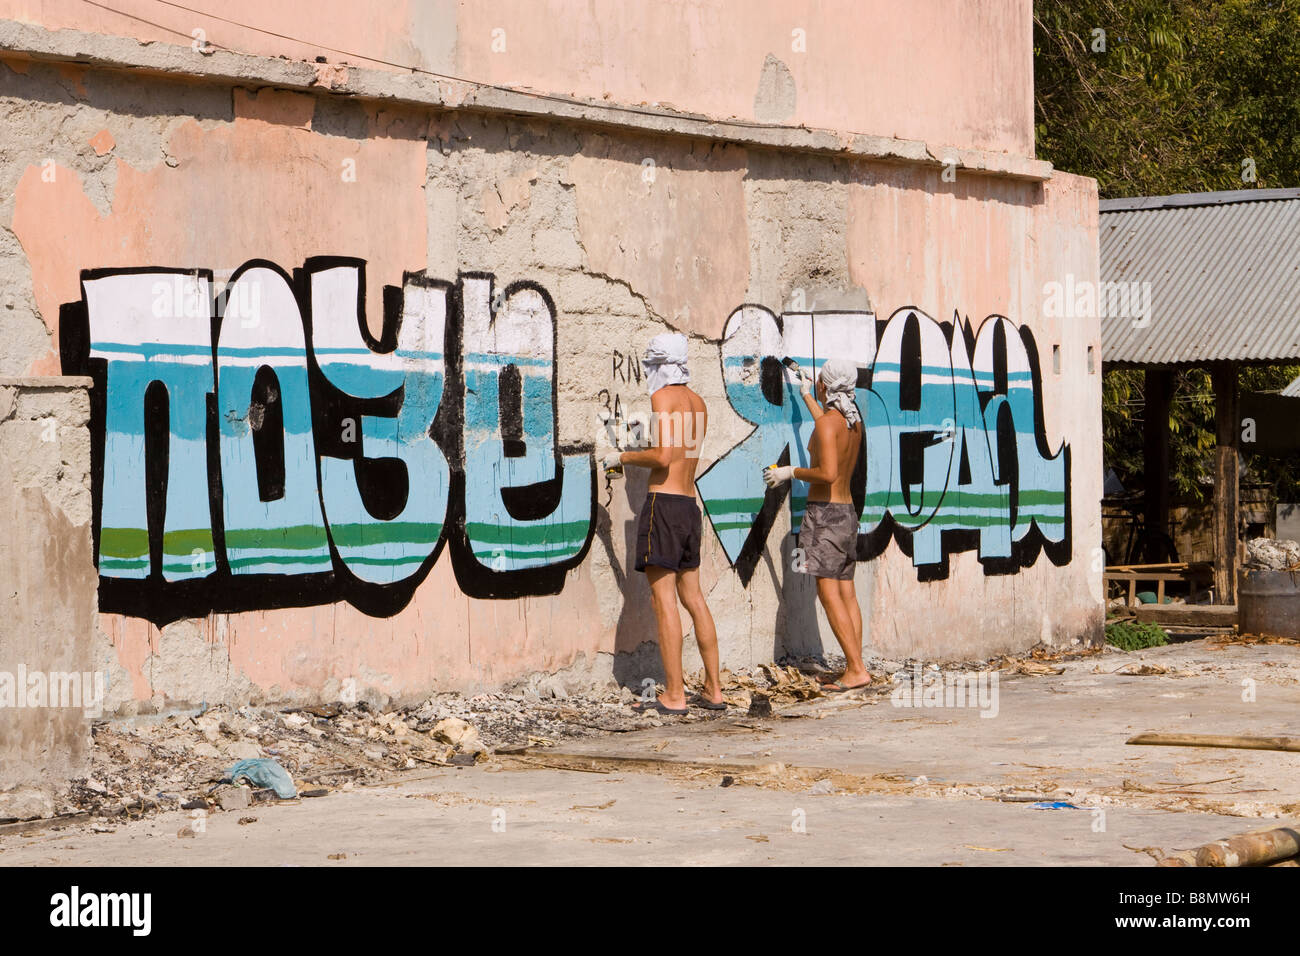 India Andaman and Nicobar Havelock island number 3 village bazaar Russian travellers painting grafitti on wall - Stock Image